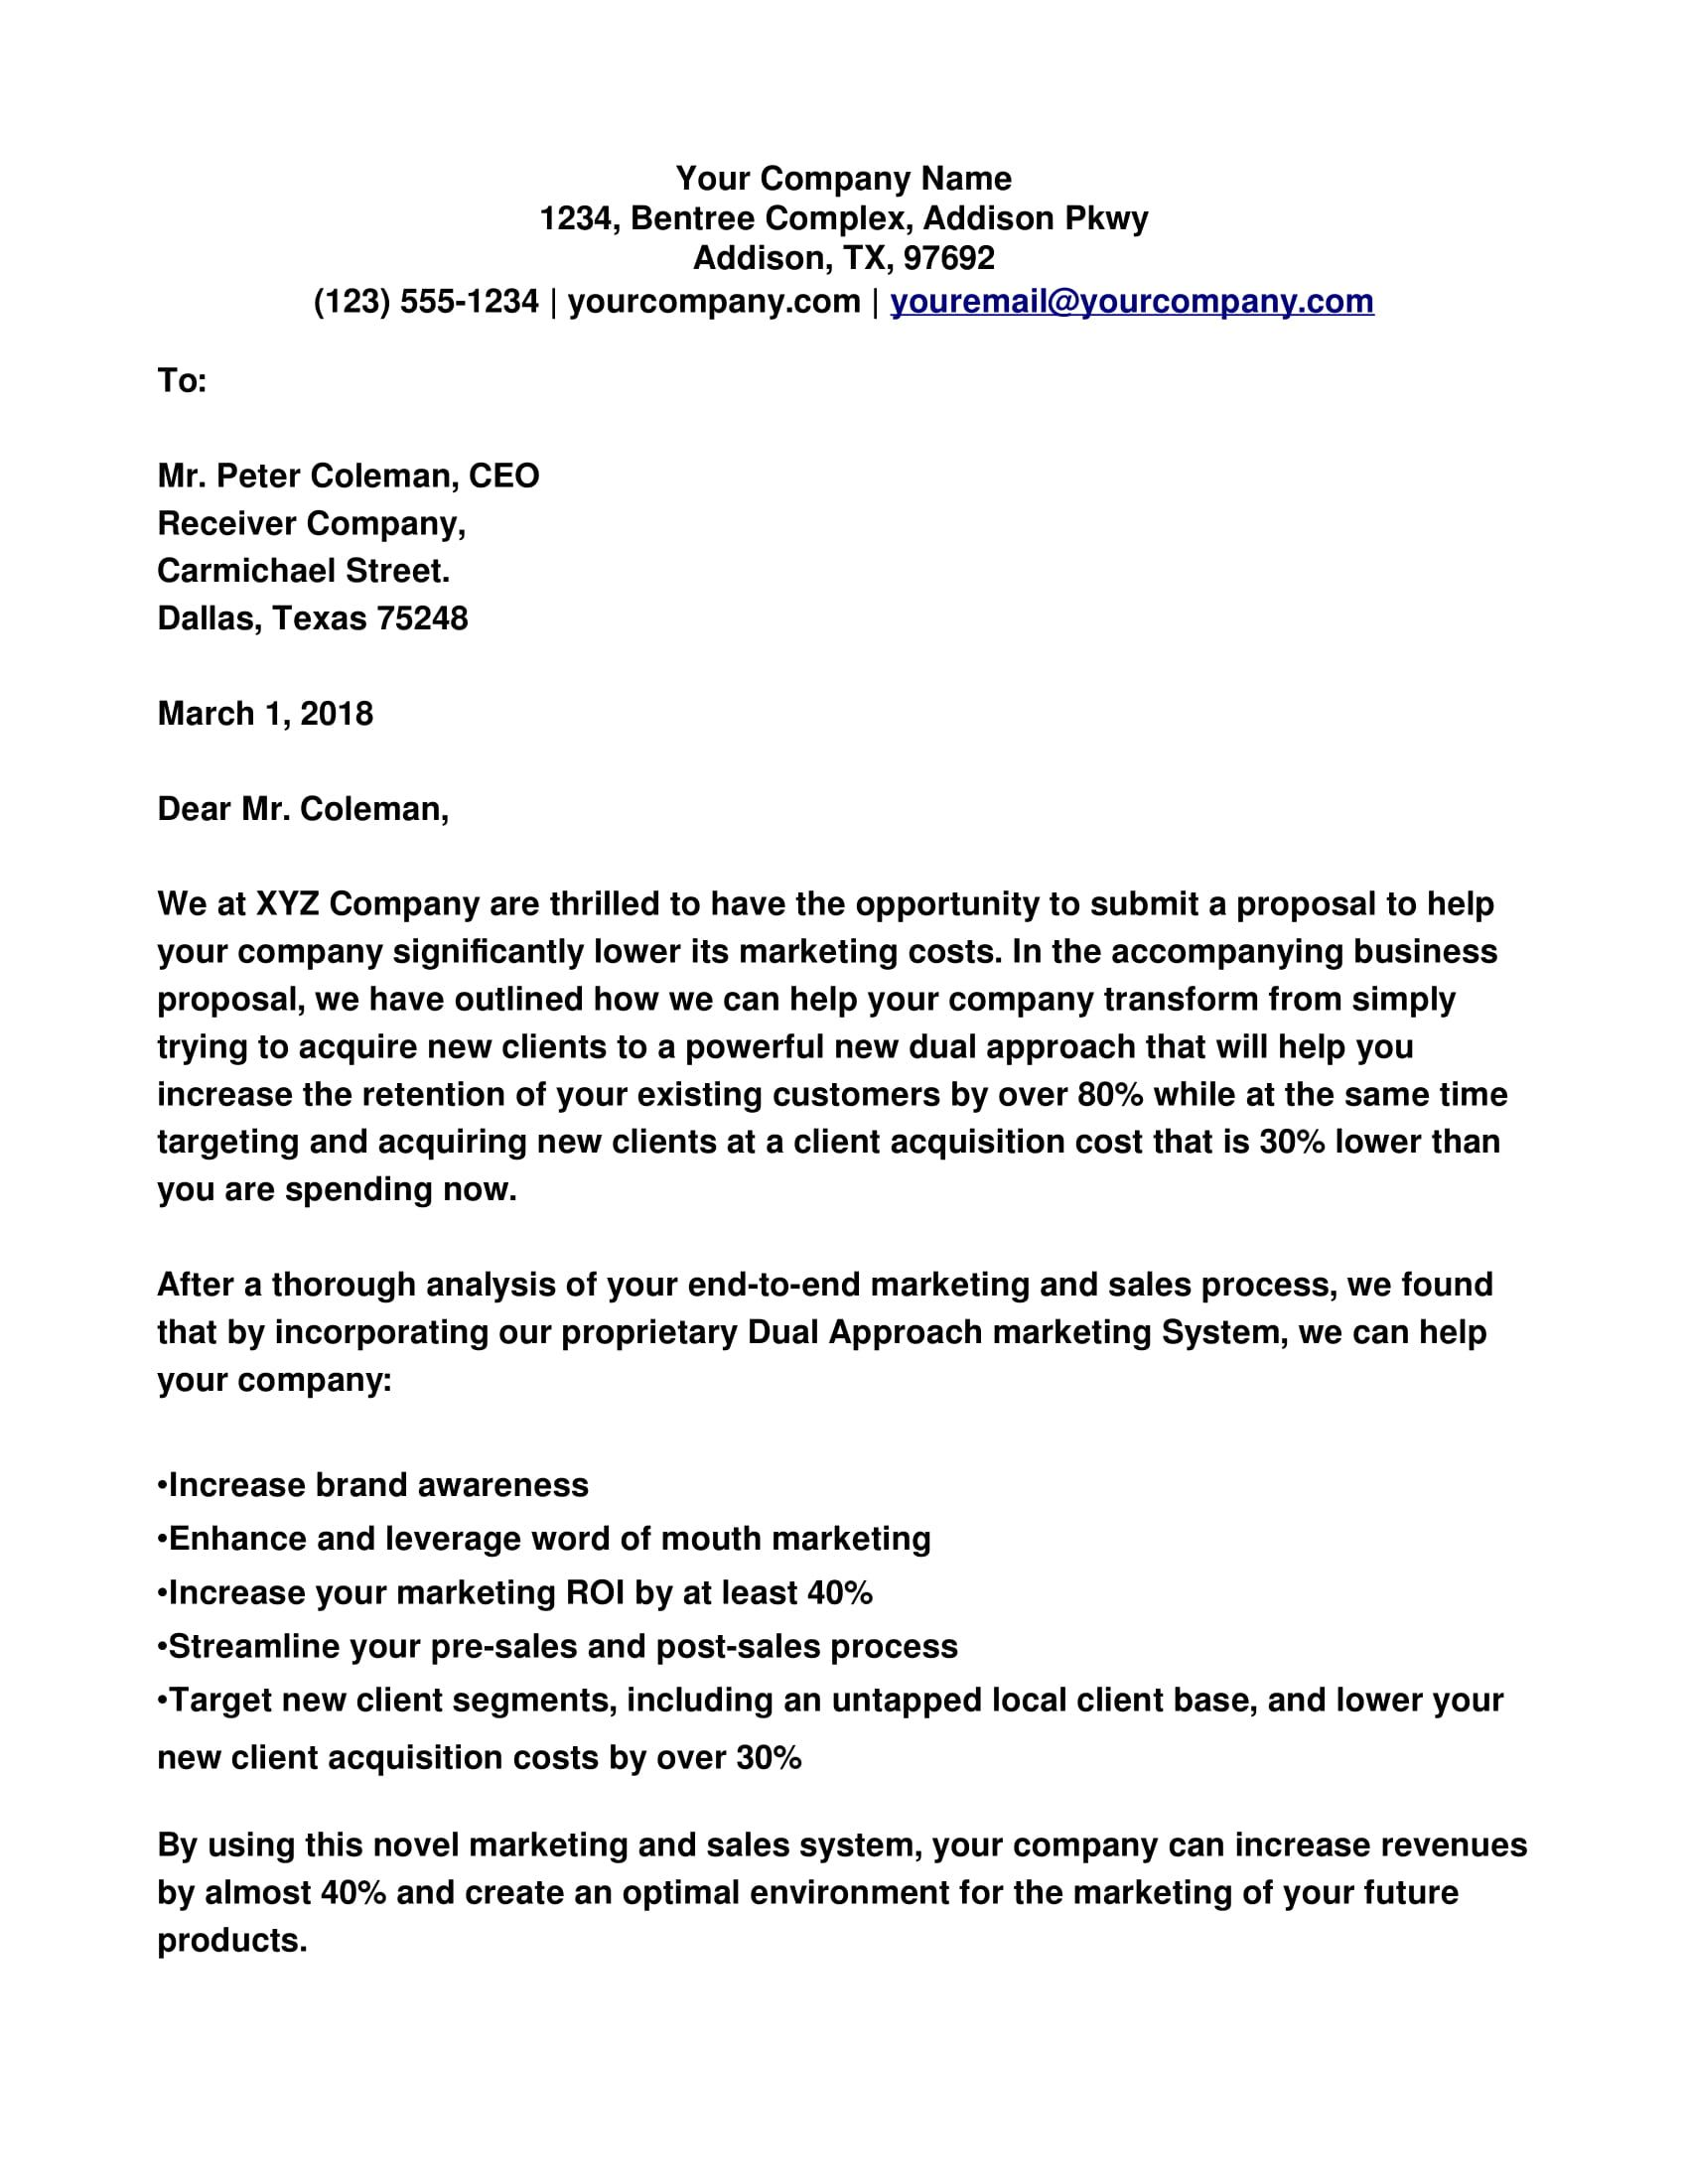 approach letter for business